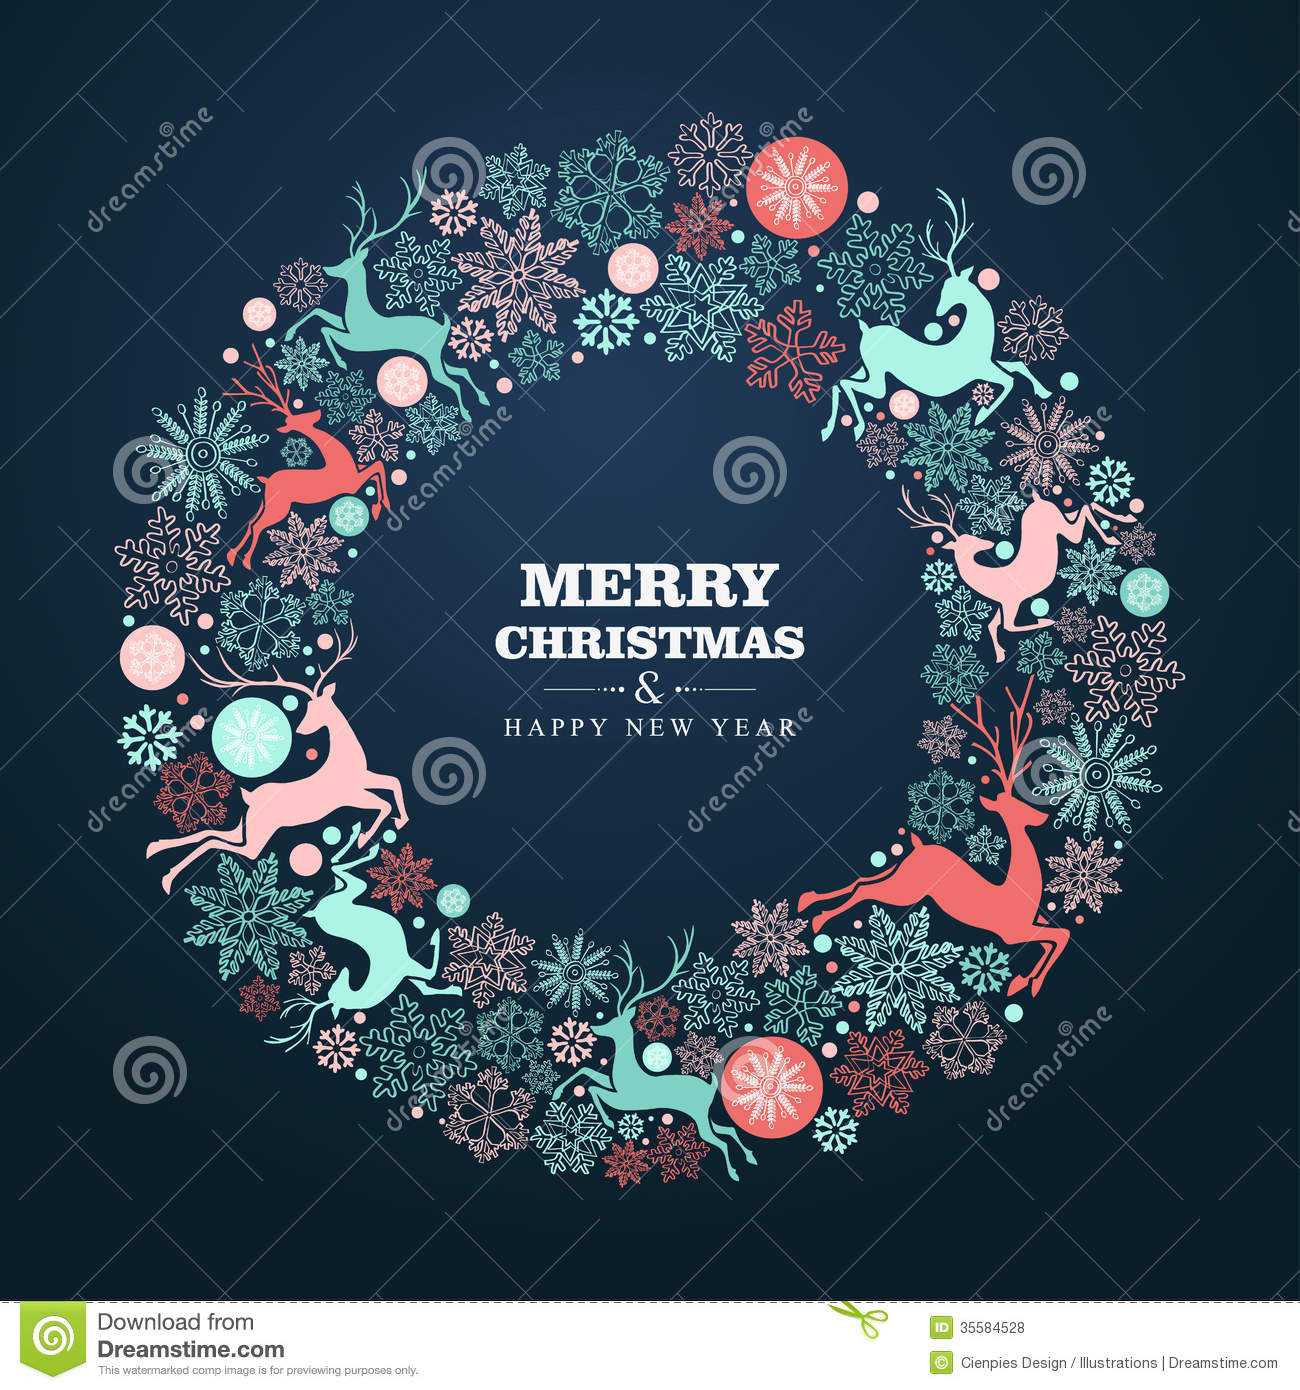 Merry christmas and happy new year greeting card stock vector merry christmas and happy new year greeting card celebration trendy kristyandbryce Choice Image